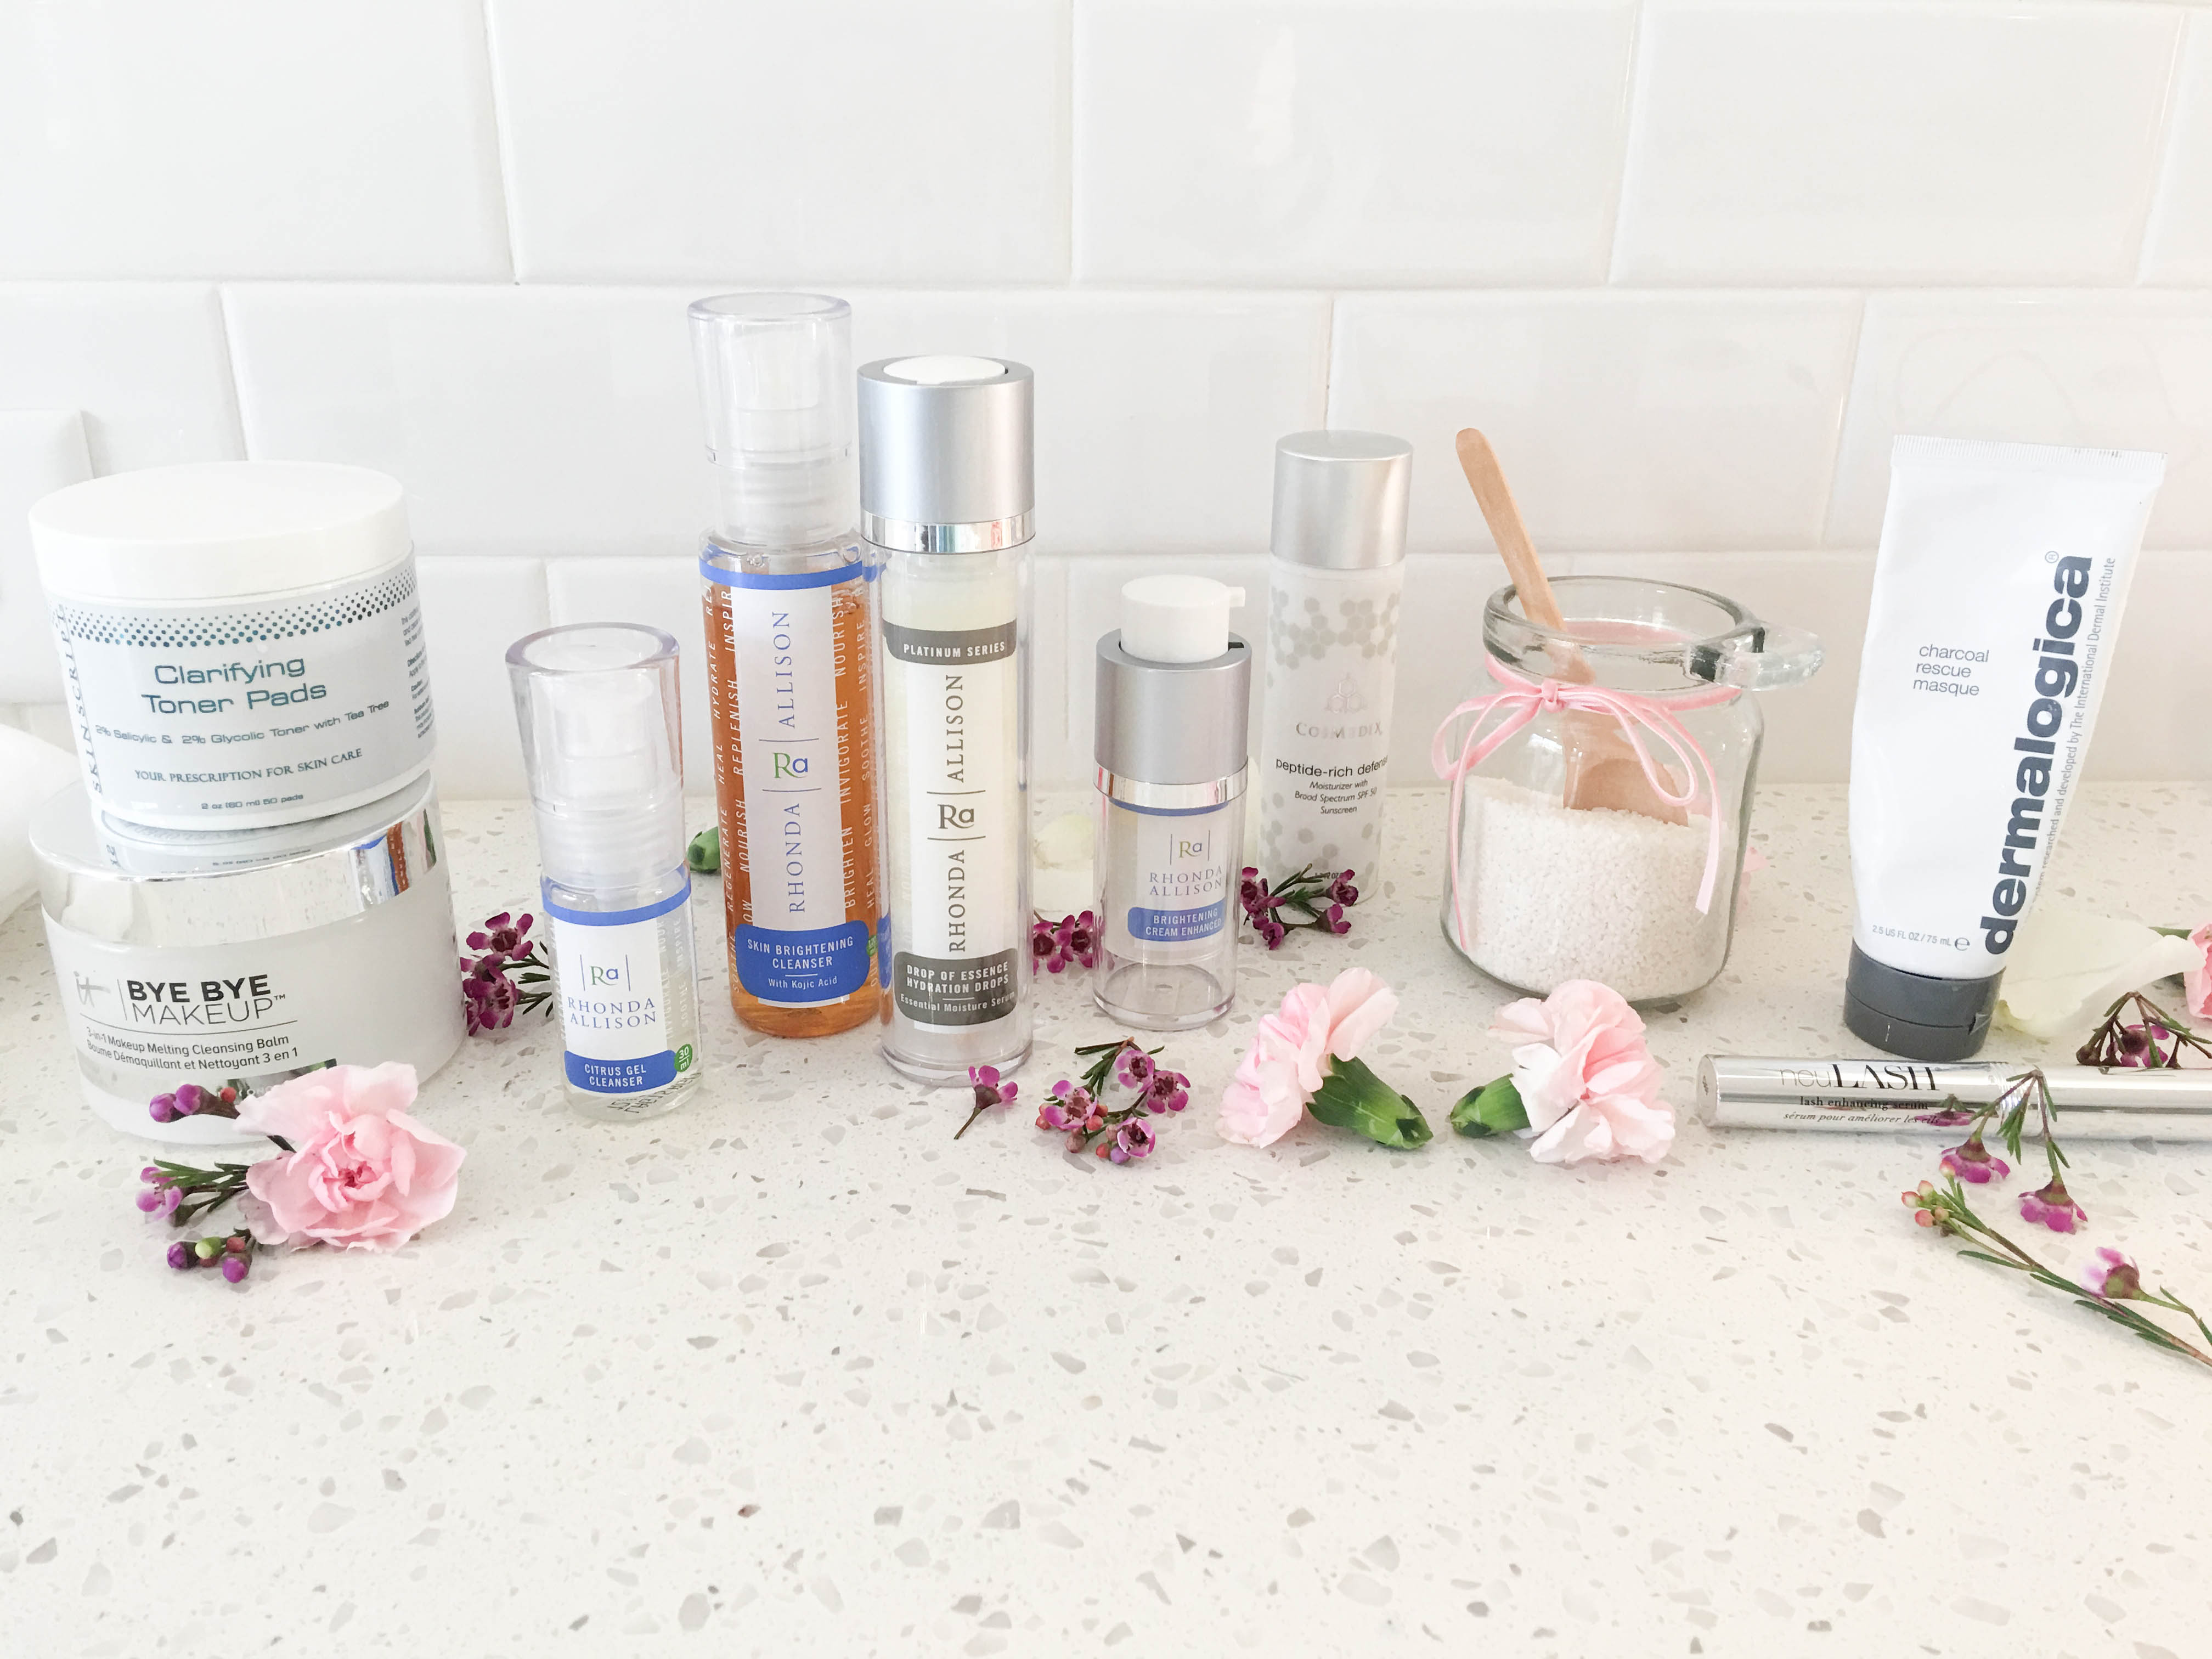 Skincare: My Daily Routine